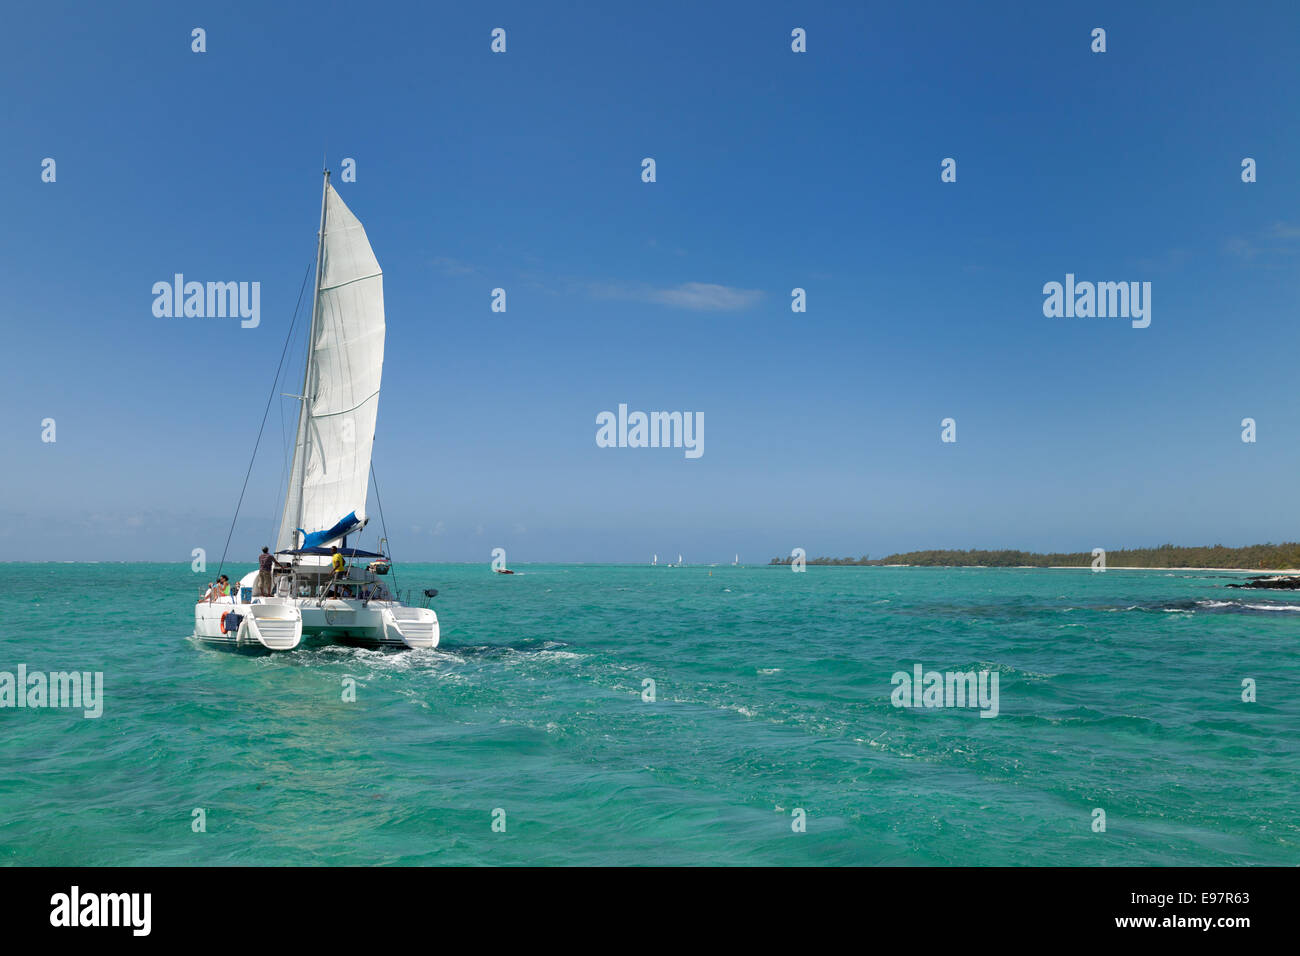 A catamaran sailing in the Indian Ocean off the coast of Mauritius - Stock Image